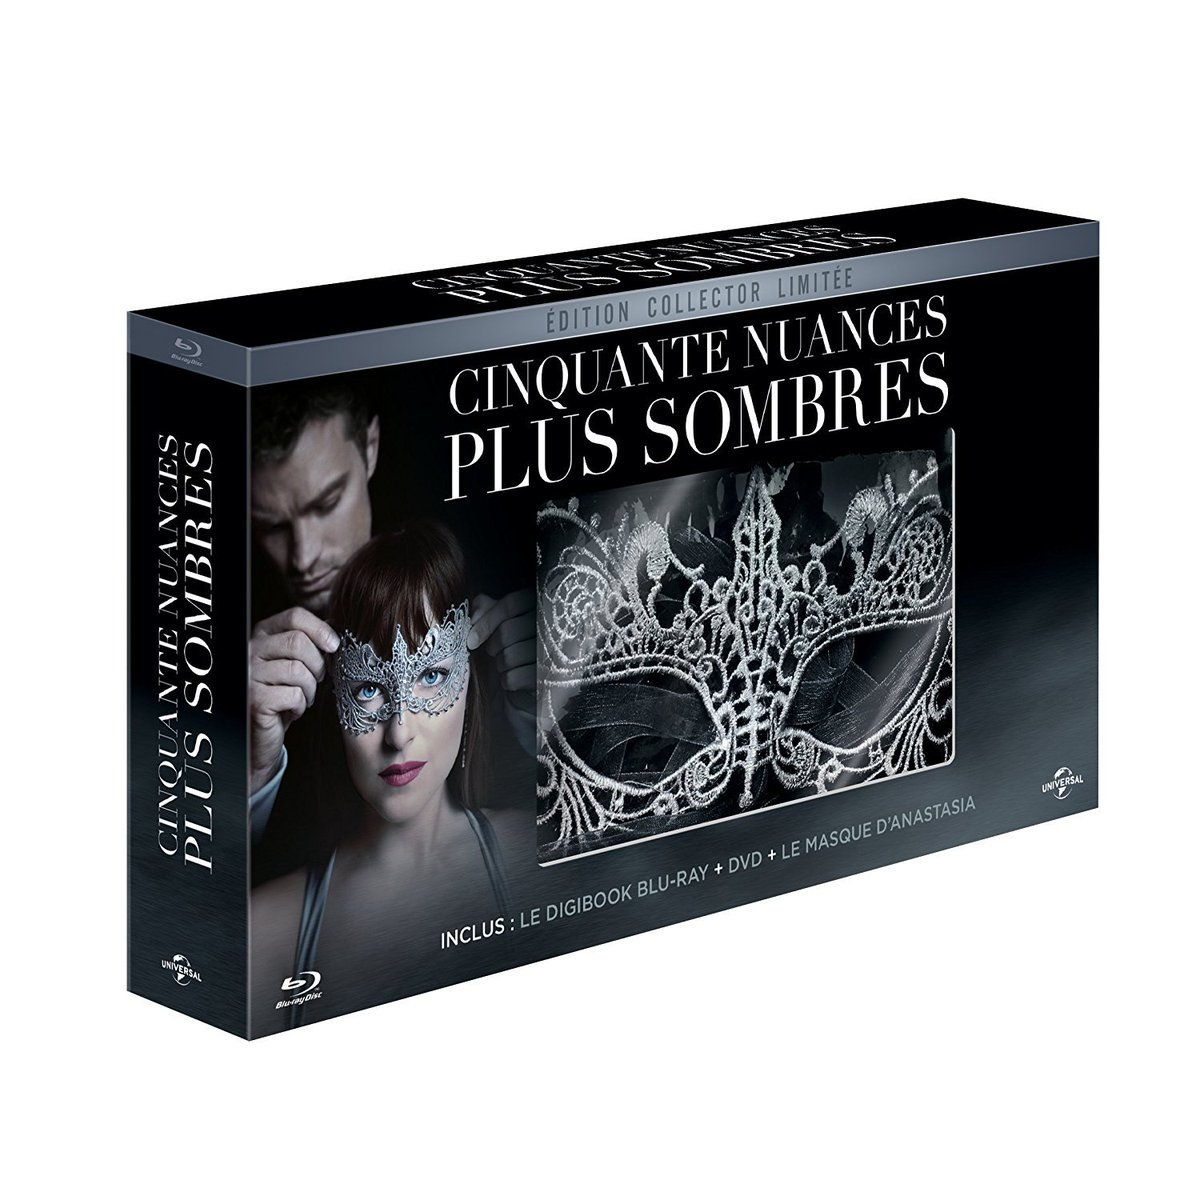 Une édition collector pour Cinquante nuances plus sombres #DVD #Bluray #masque #FiftyShadesDarker   https://www. amazon.fr/gp/product/B06 XRKDNN1?ie=UTF8&amp;camp=1642&amp;creativeASIN=B06XRKDNN1&amp;linkCode=xm2&amp;tag=leblogdeshack-21 &nbsp; … <br>http://pic.twitter.com/szN58xSyrV